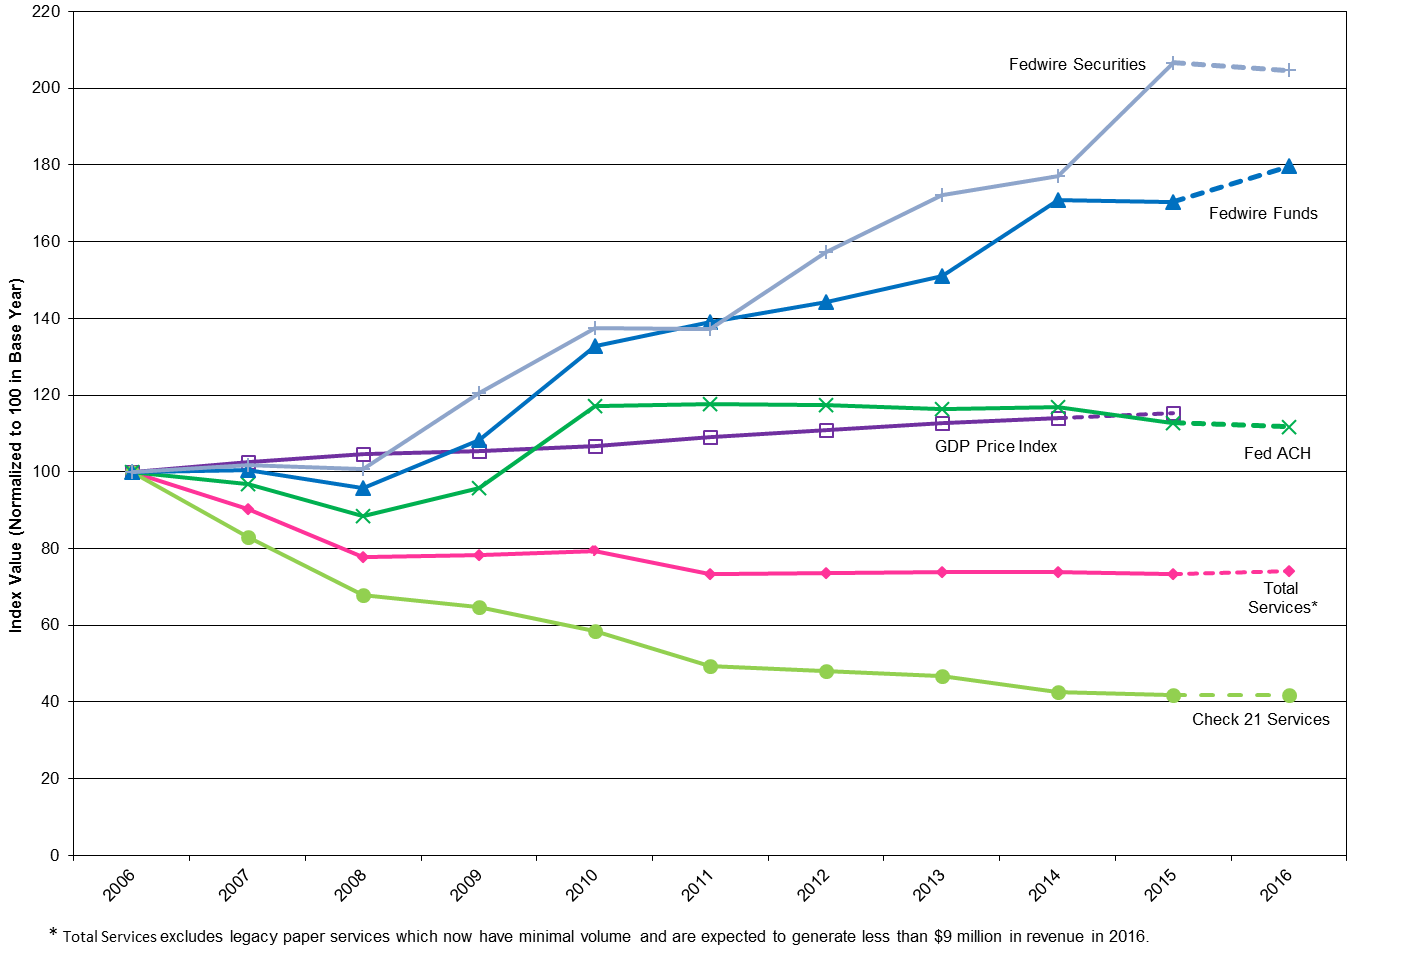 Figure: Price Indexes for Federal Reserve Priced Services. Line chart, by index value (normalized to 100 in Base Year), 2006 to 2016. Data are annual rate. There are six series, 'Fedwire Securities,' 'Fedwire Funds,' 'GDP Price Index,' 'Fed ACH,' 'Total Services,' and 'Check 21 Services.' All series begin at 100. Fedwire Securities generally increases to about 205 by 2015.  Fedwire Funds generally increases to about 170 by 2015. GDP Price Index generally increases to about 118 by 2014. Fed ACH generally decreases to about 90 by 2008 and then generally increases to about 117 by 2015. Total Services generally decreases to about 75 by 2015 and excludes legacy paper services which now have minimal volume and are expected to generate less than $9 million in revenue in 2016. Check 21 Services generally decreases to about 40 by 2015. The projection values are nearly unchanged from the previous year�s values, except for Fedwire Funds which climbs to 180.                    